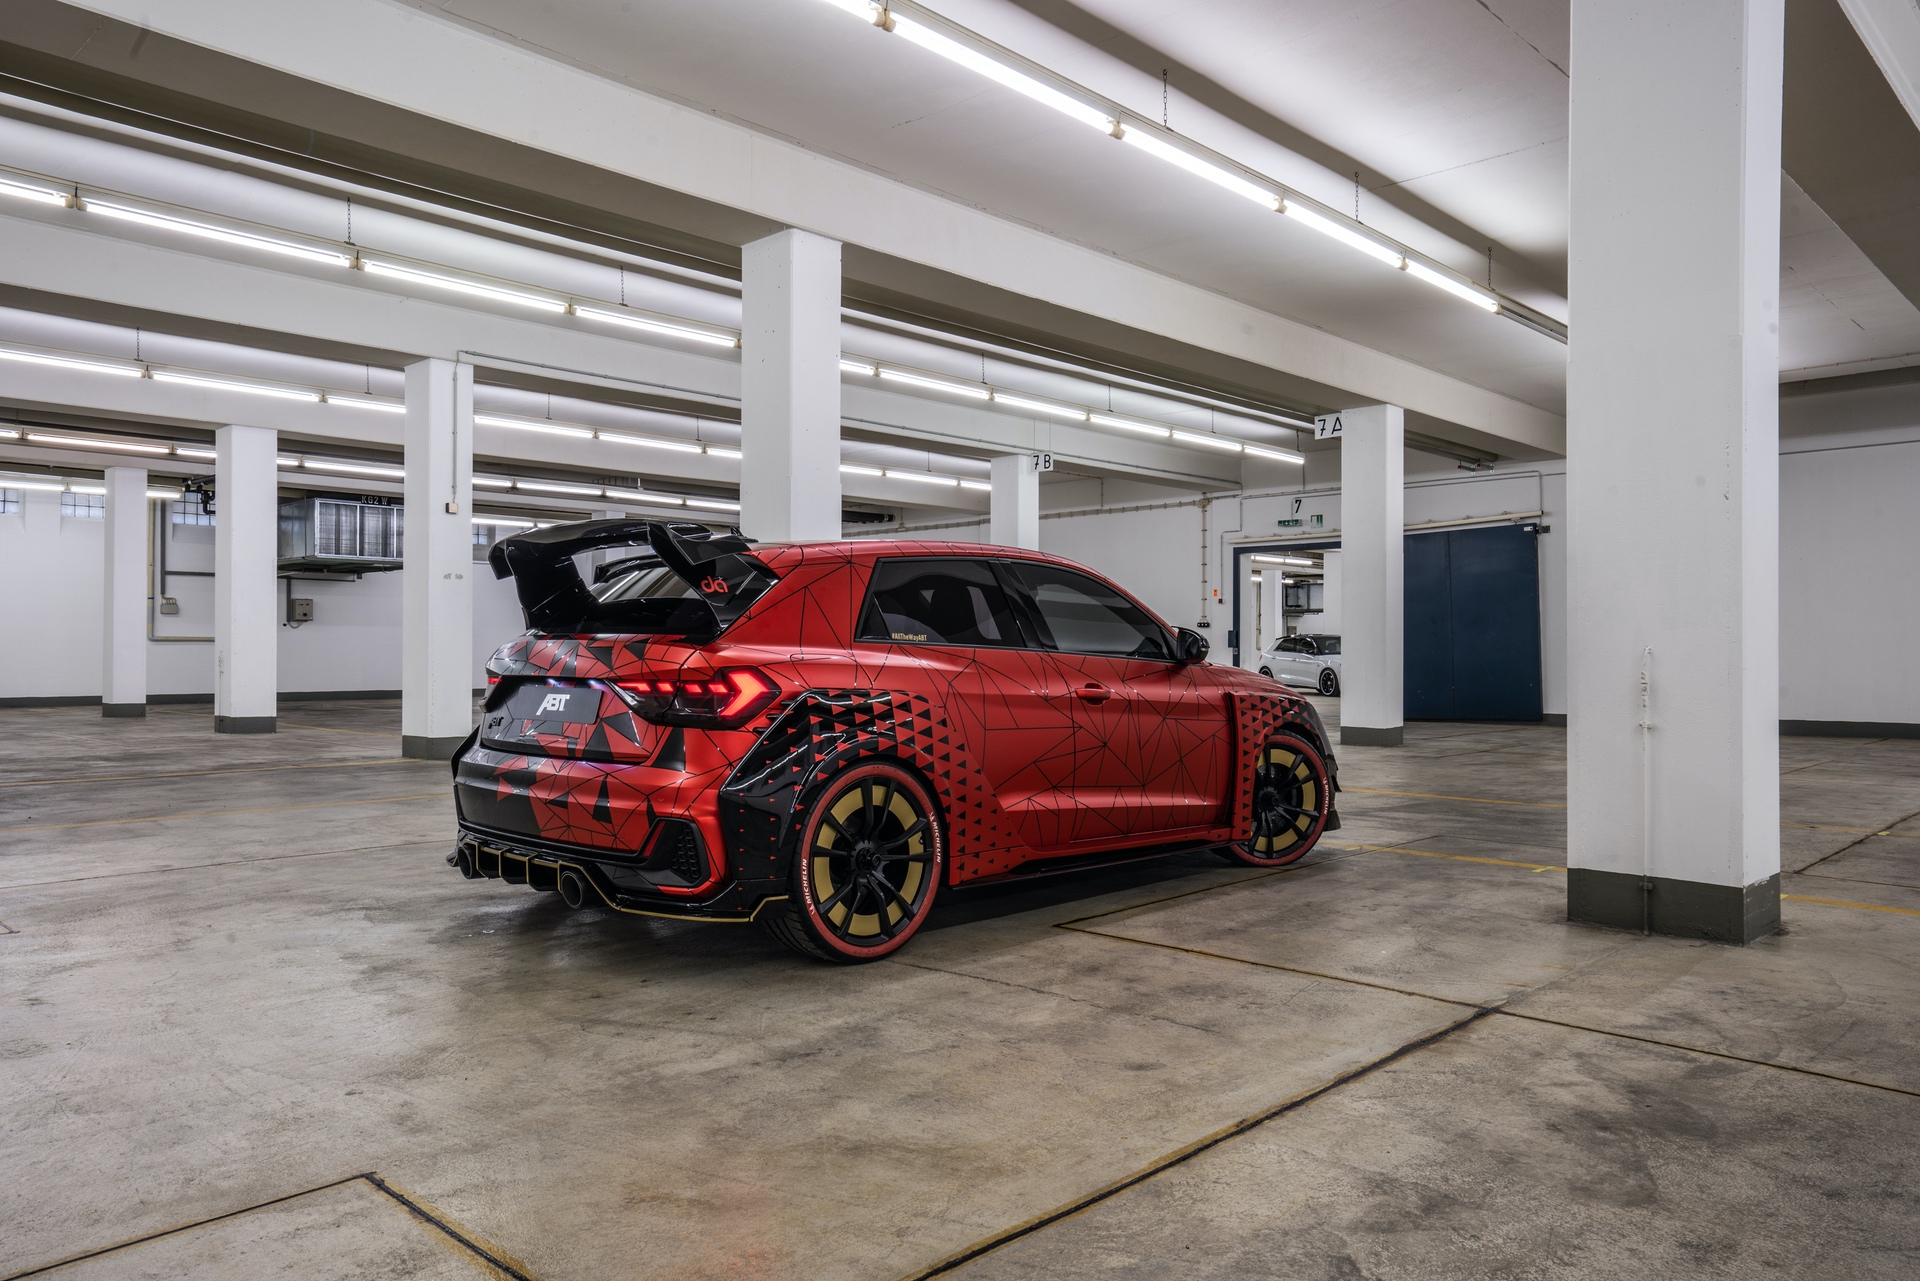 Audi_A1_Sportback_One_Of_One_by_ABT_Sportsline_0002